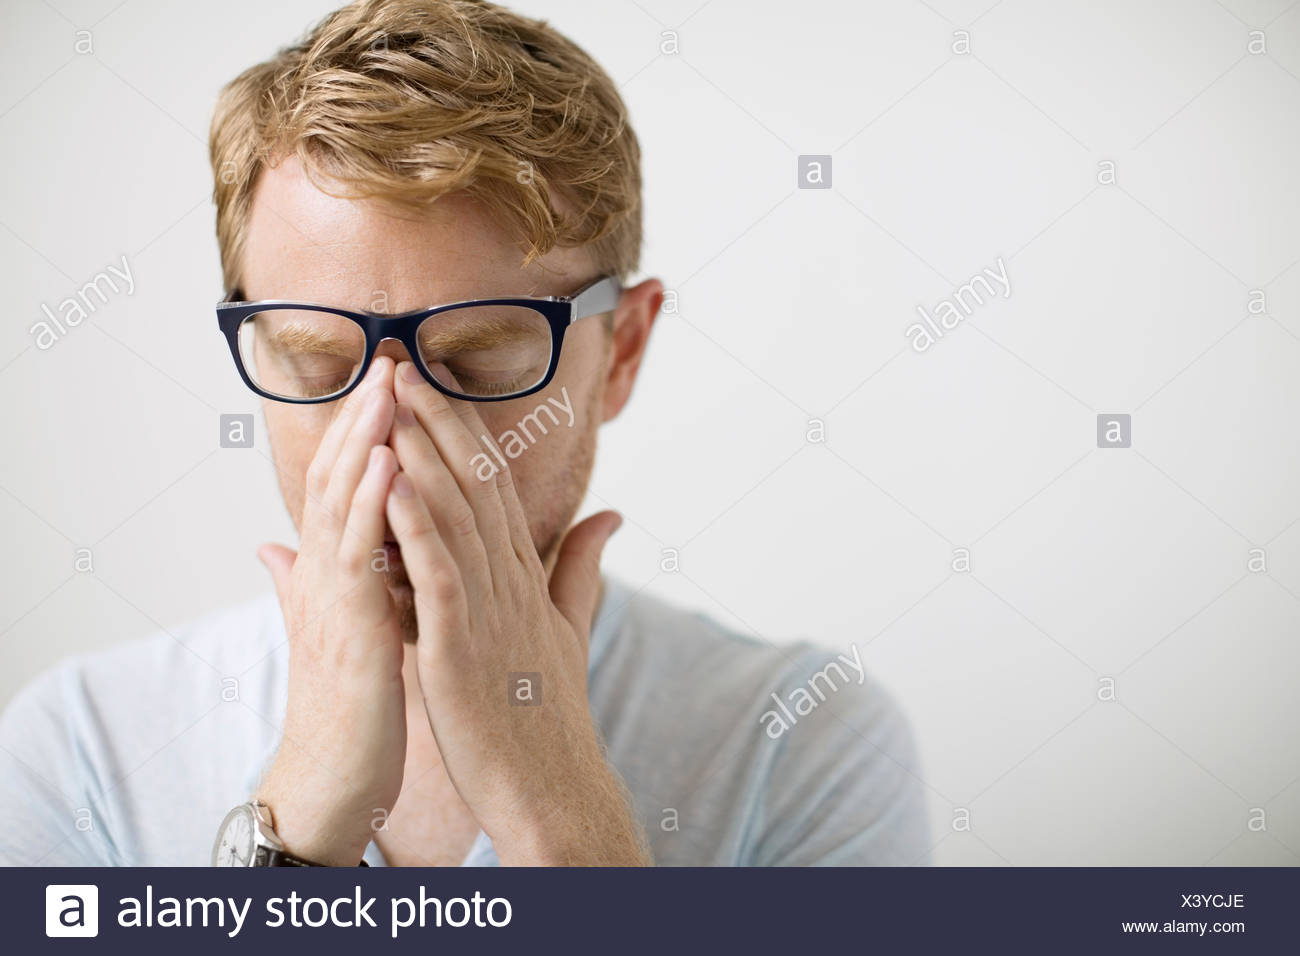 Blonde man rubbing eyes under eyeglasses - Stock Image